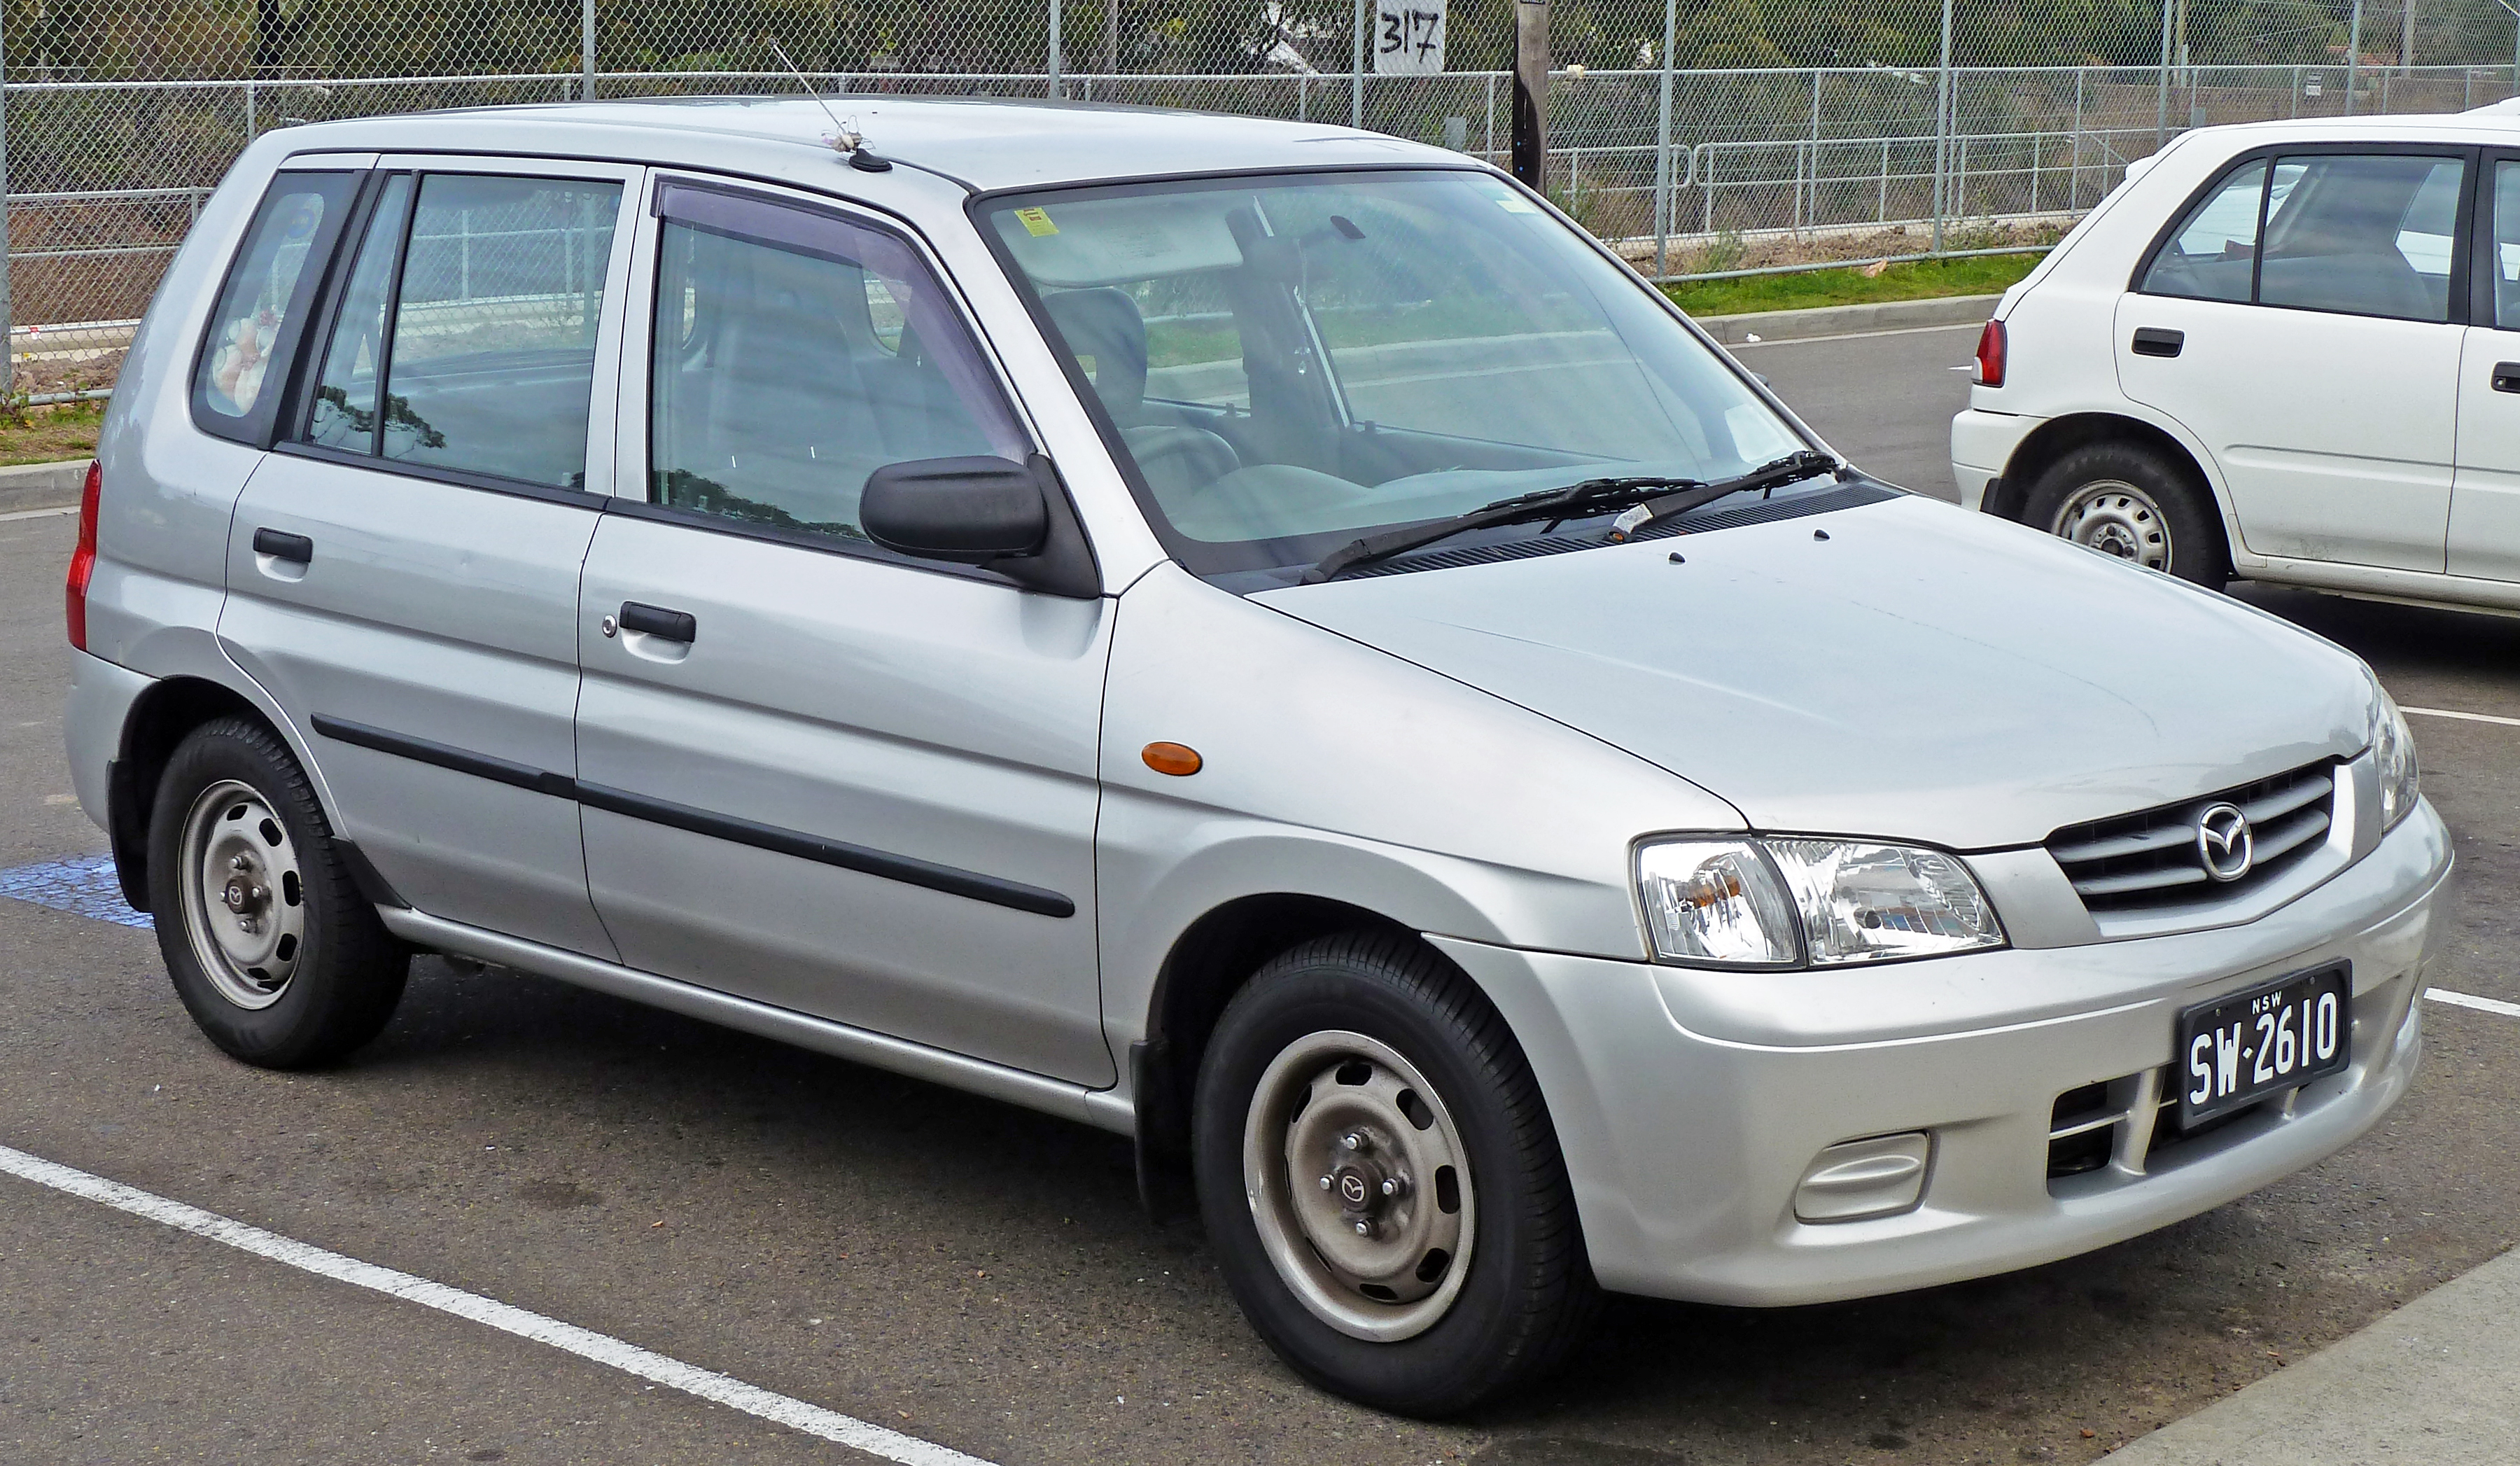 2000 Mazda 121 Hatchback 3-door